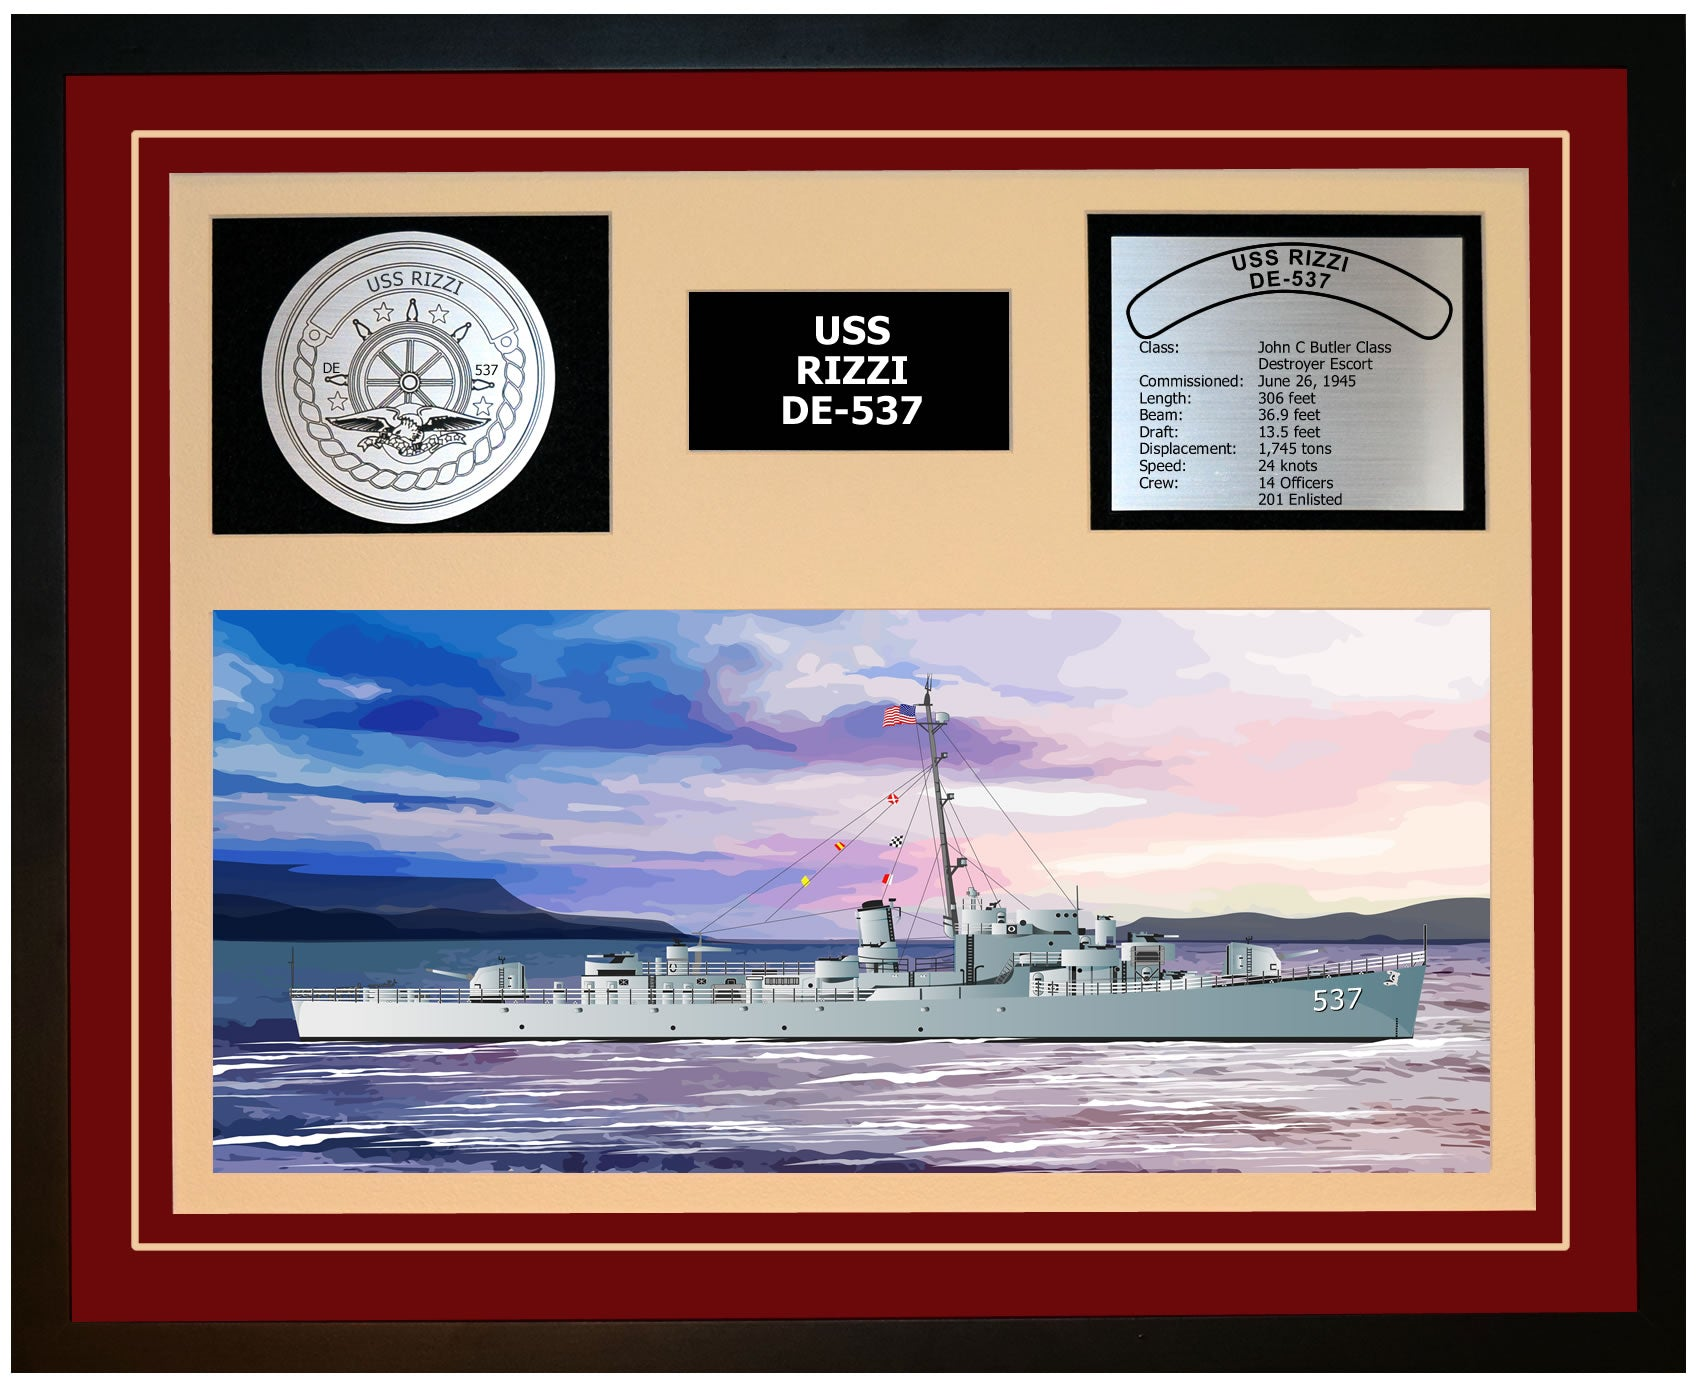 USS RIZZI DE-537 Framed Navy Ship Display Burgundy